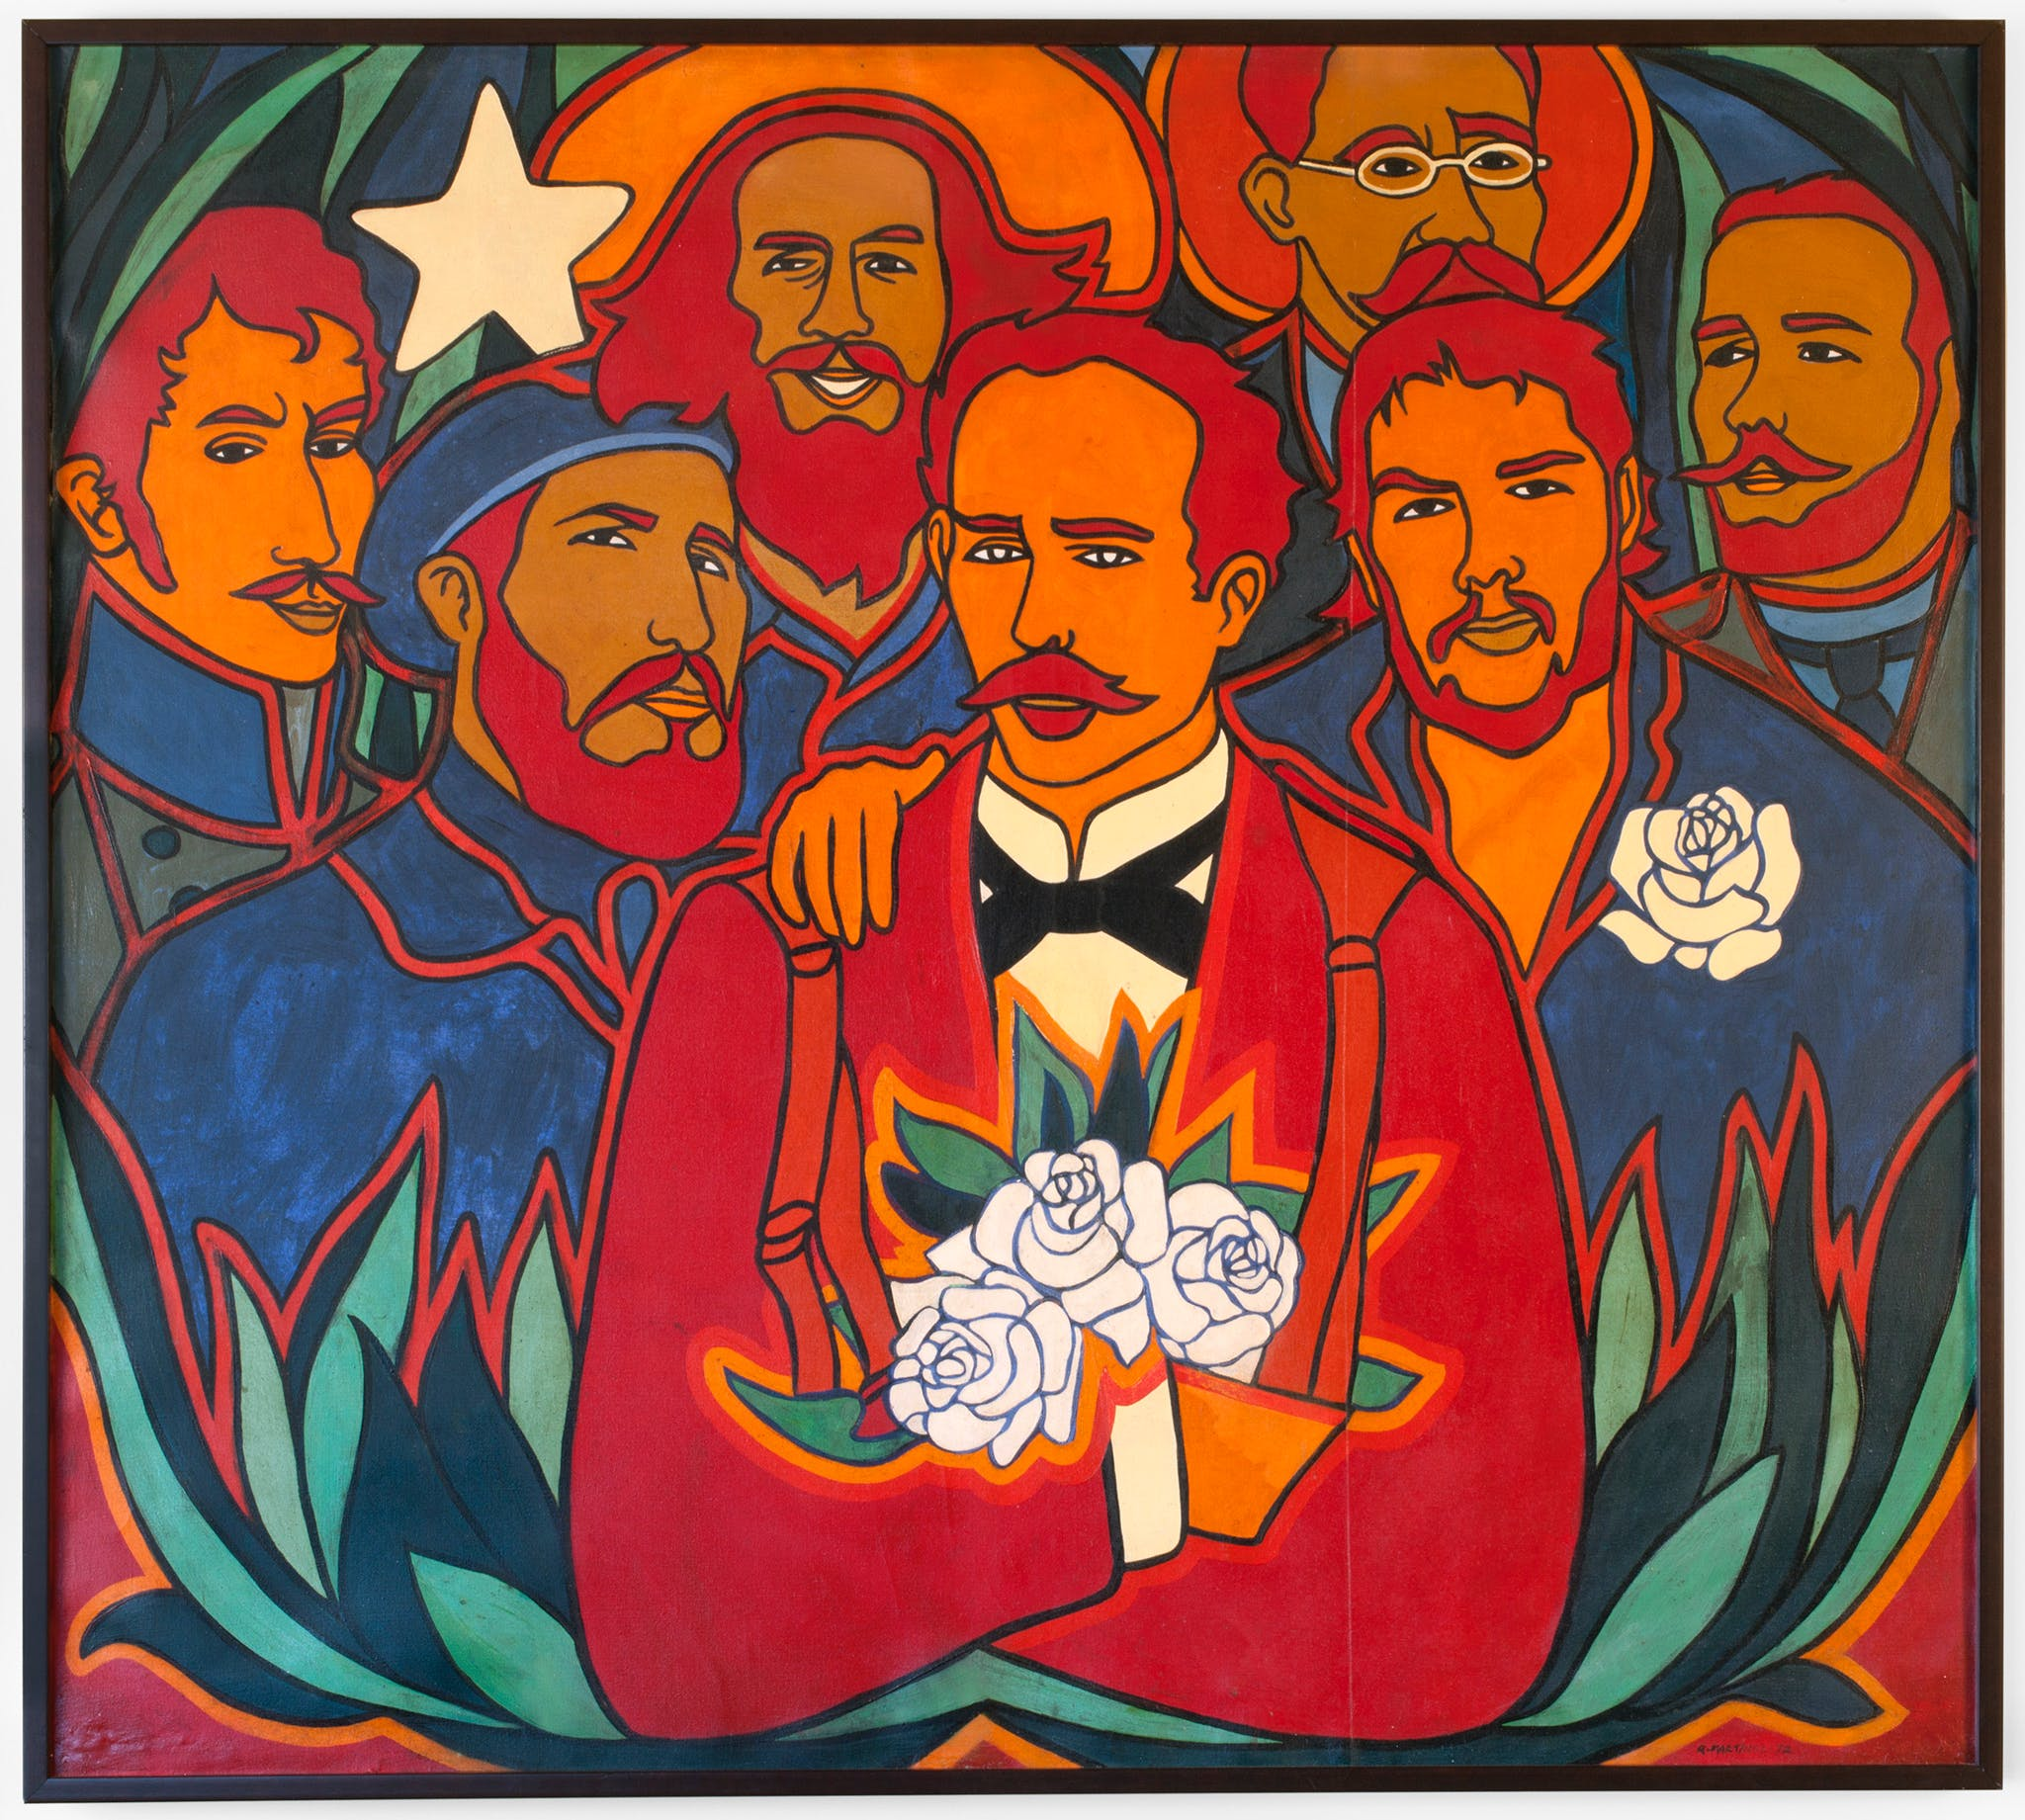 7 Cuban men in a work of orange, blue and ted. One man holding roses.